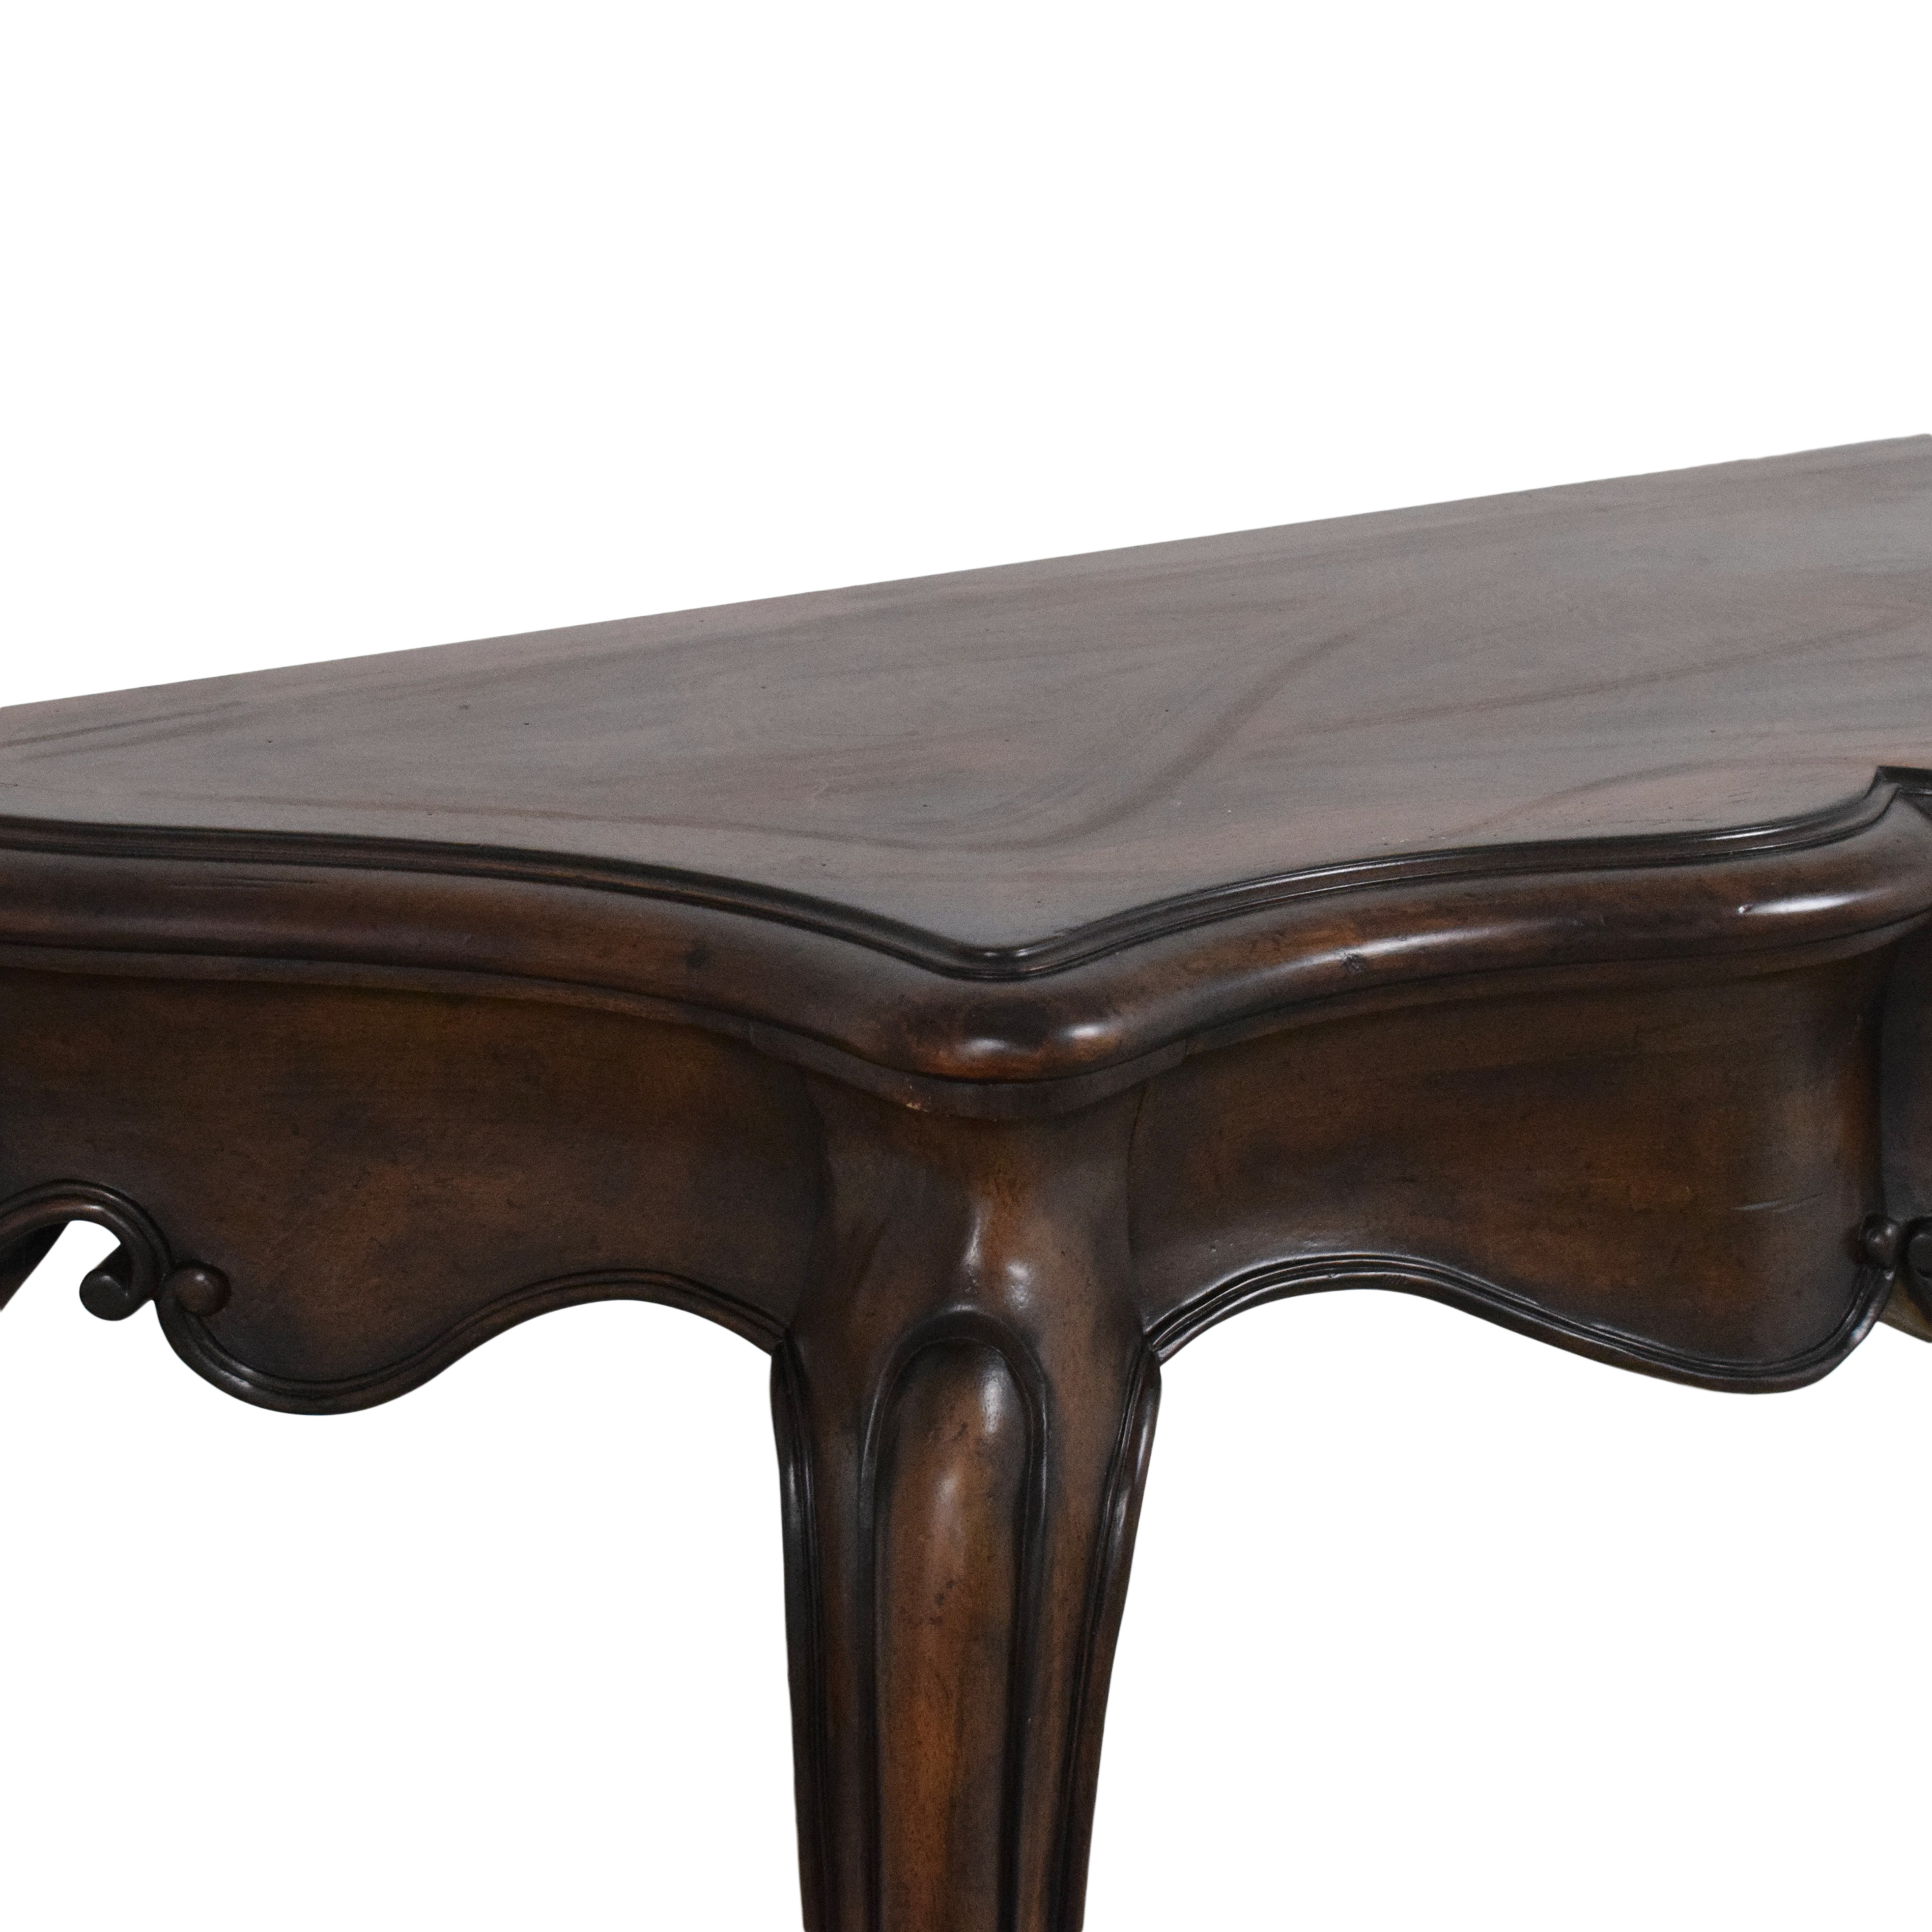 Thomasville Thomasville Hills of Tuscany Console Table for sale